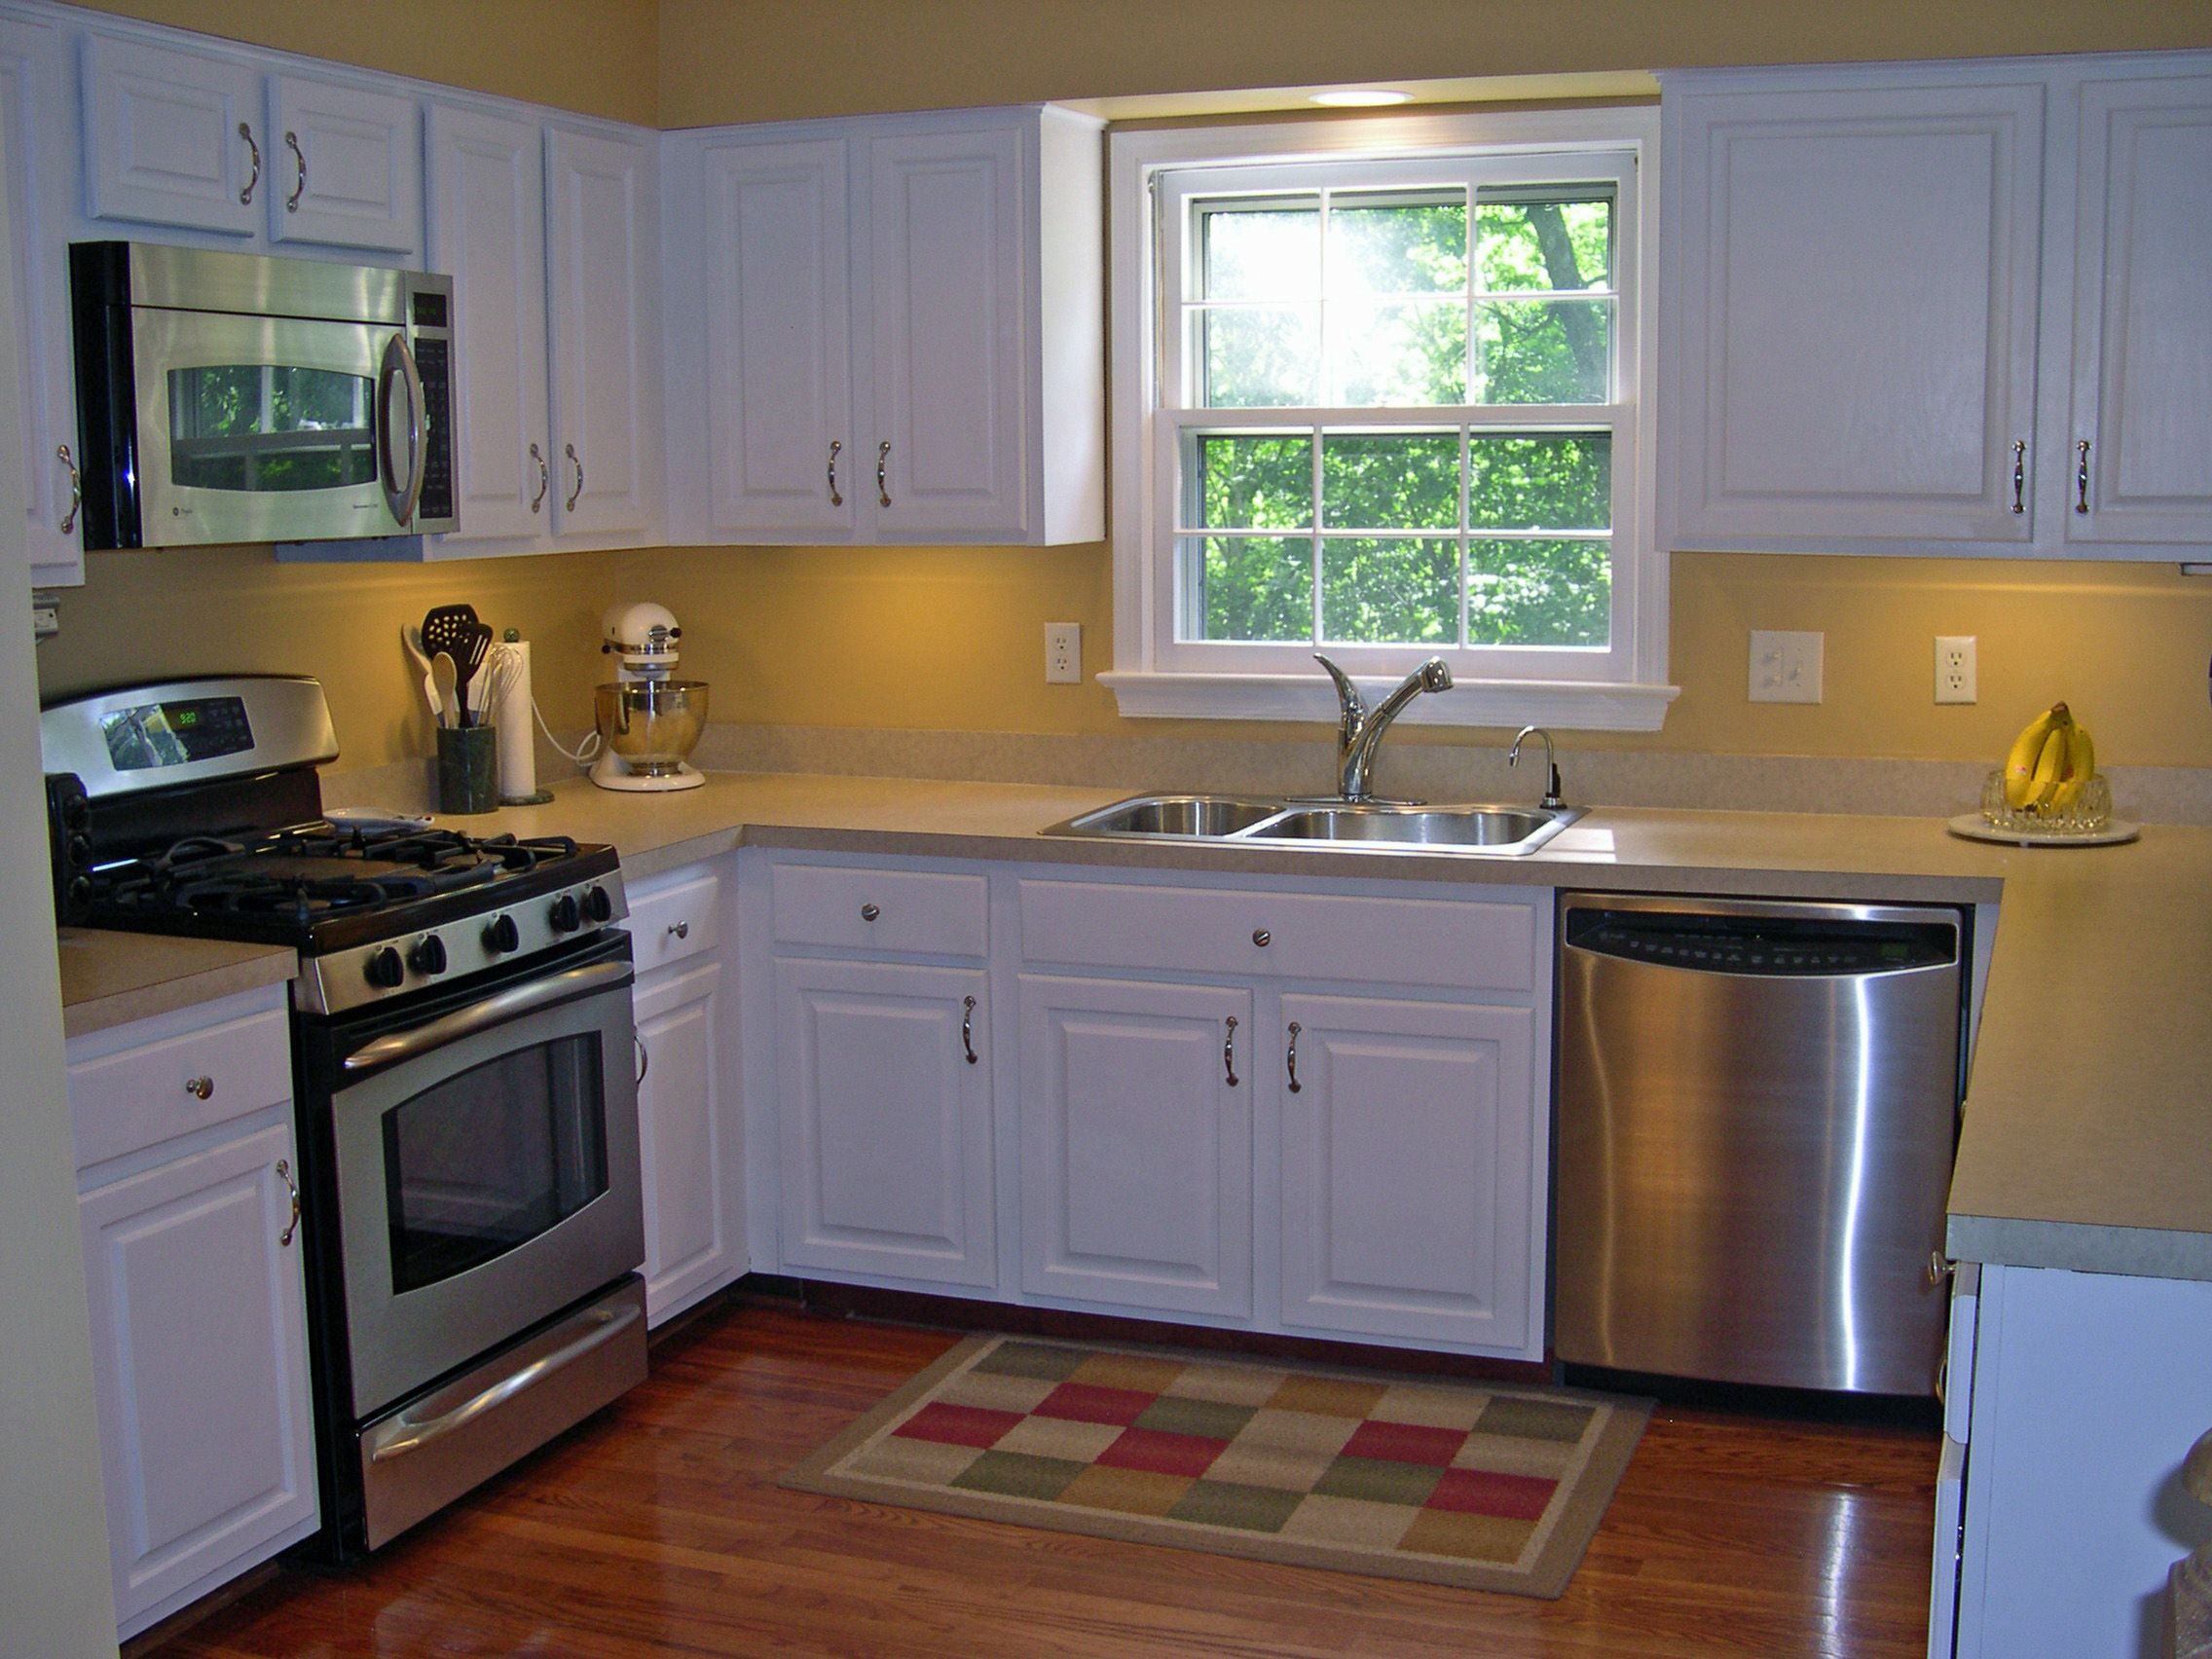 Small Kitchen Counter Ideas Small Kitchen Remodeling Ideas Small Kitchen Remodel